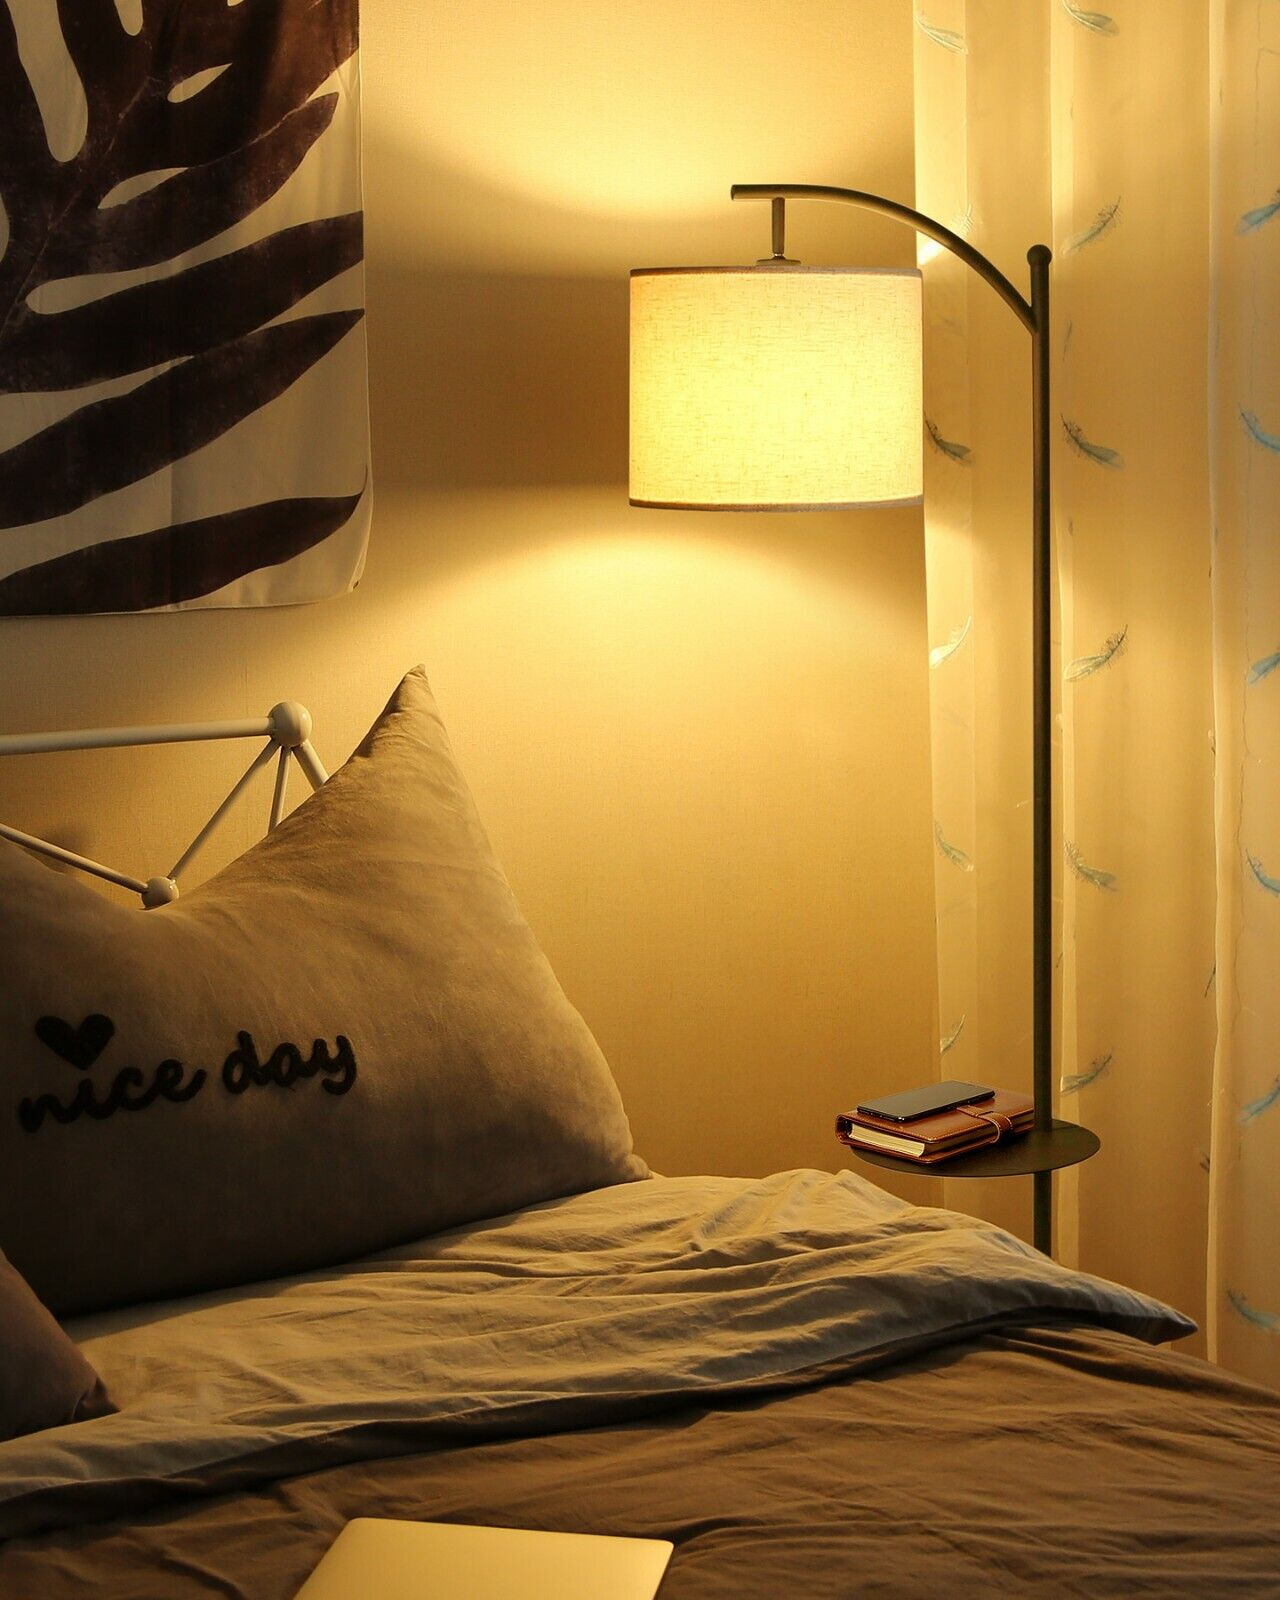 Dimmable Vintage Floor Lamp with Remote Control, Color Tempe